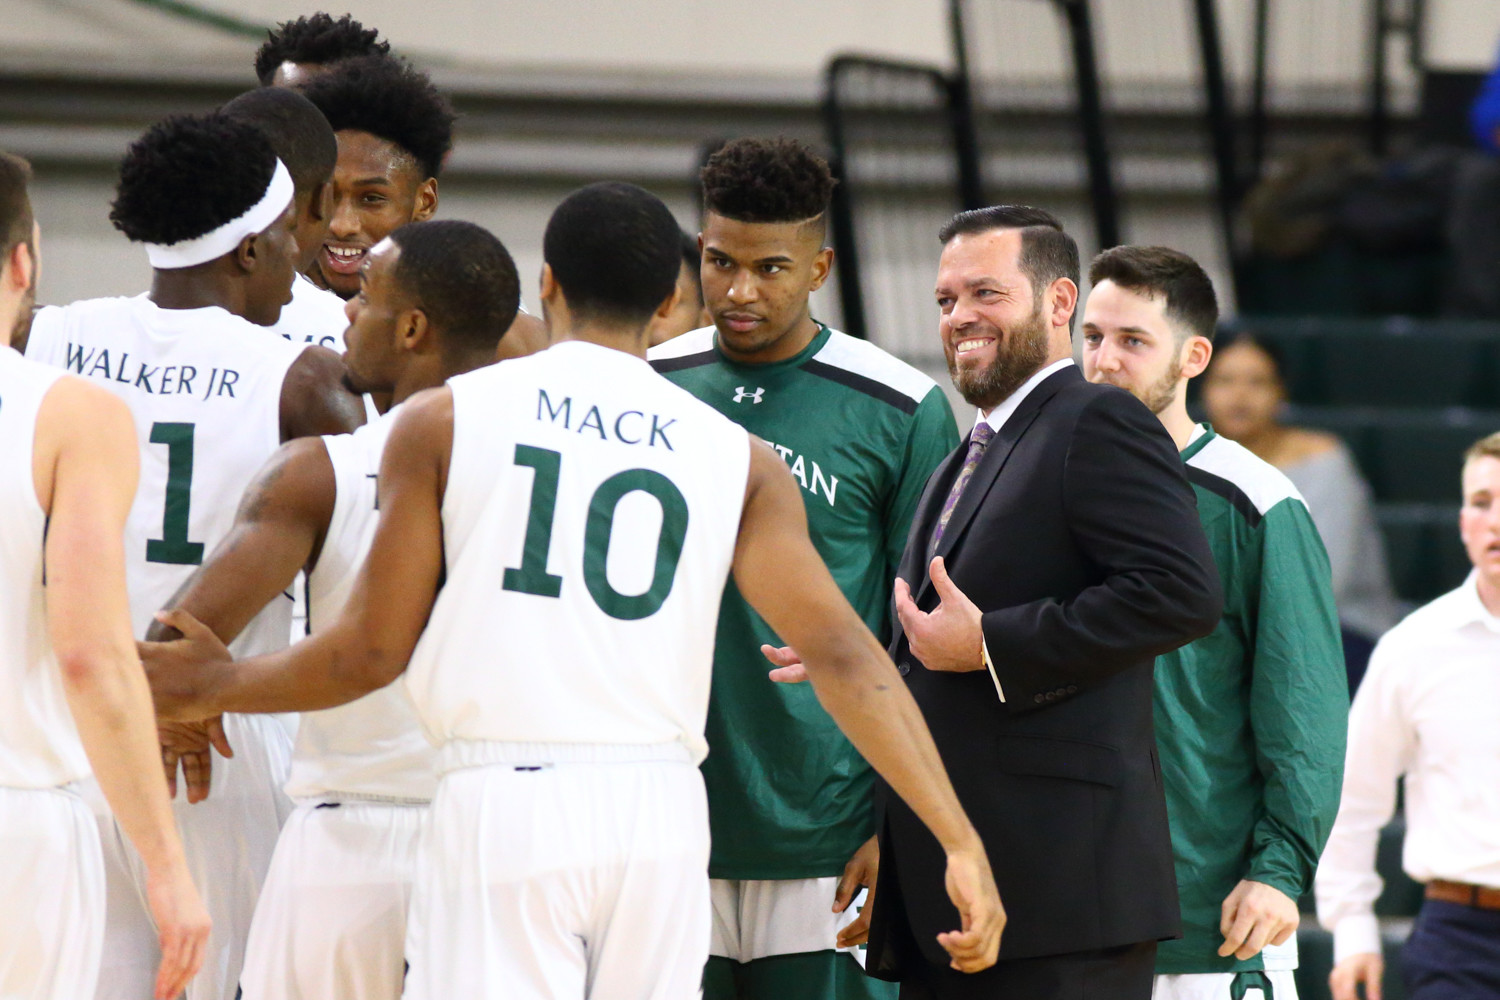 Manhattan College head coach Steve Masiello was all smiles when the Jaspers held a double-digit lead, but his team faded down the stretch, losing to Rider.